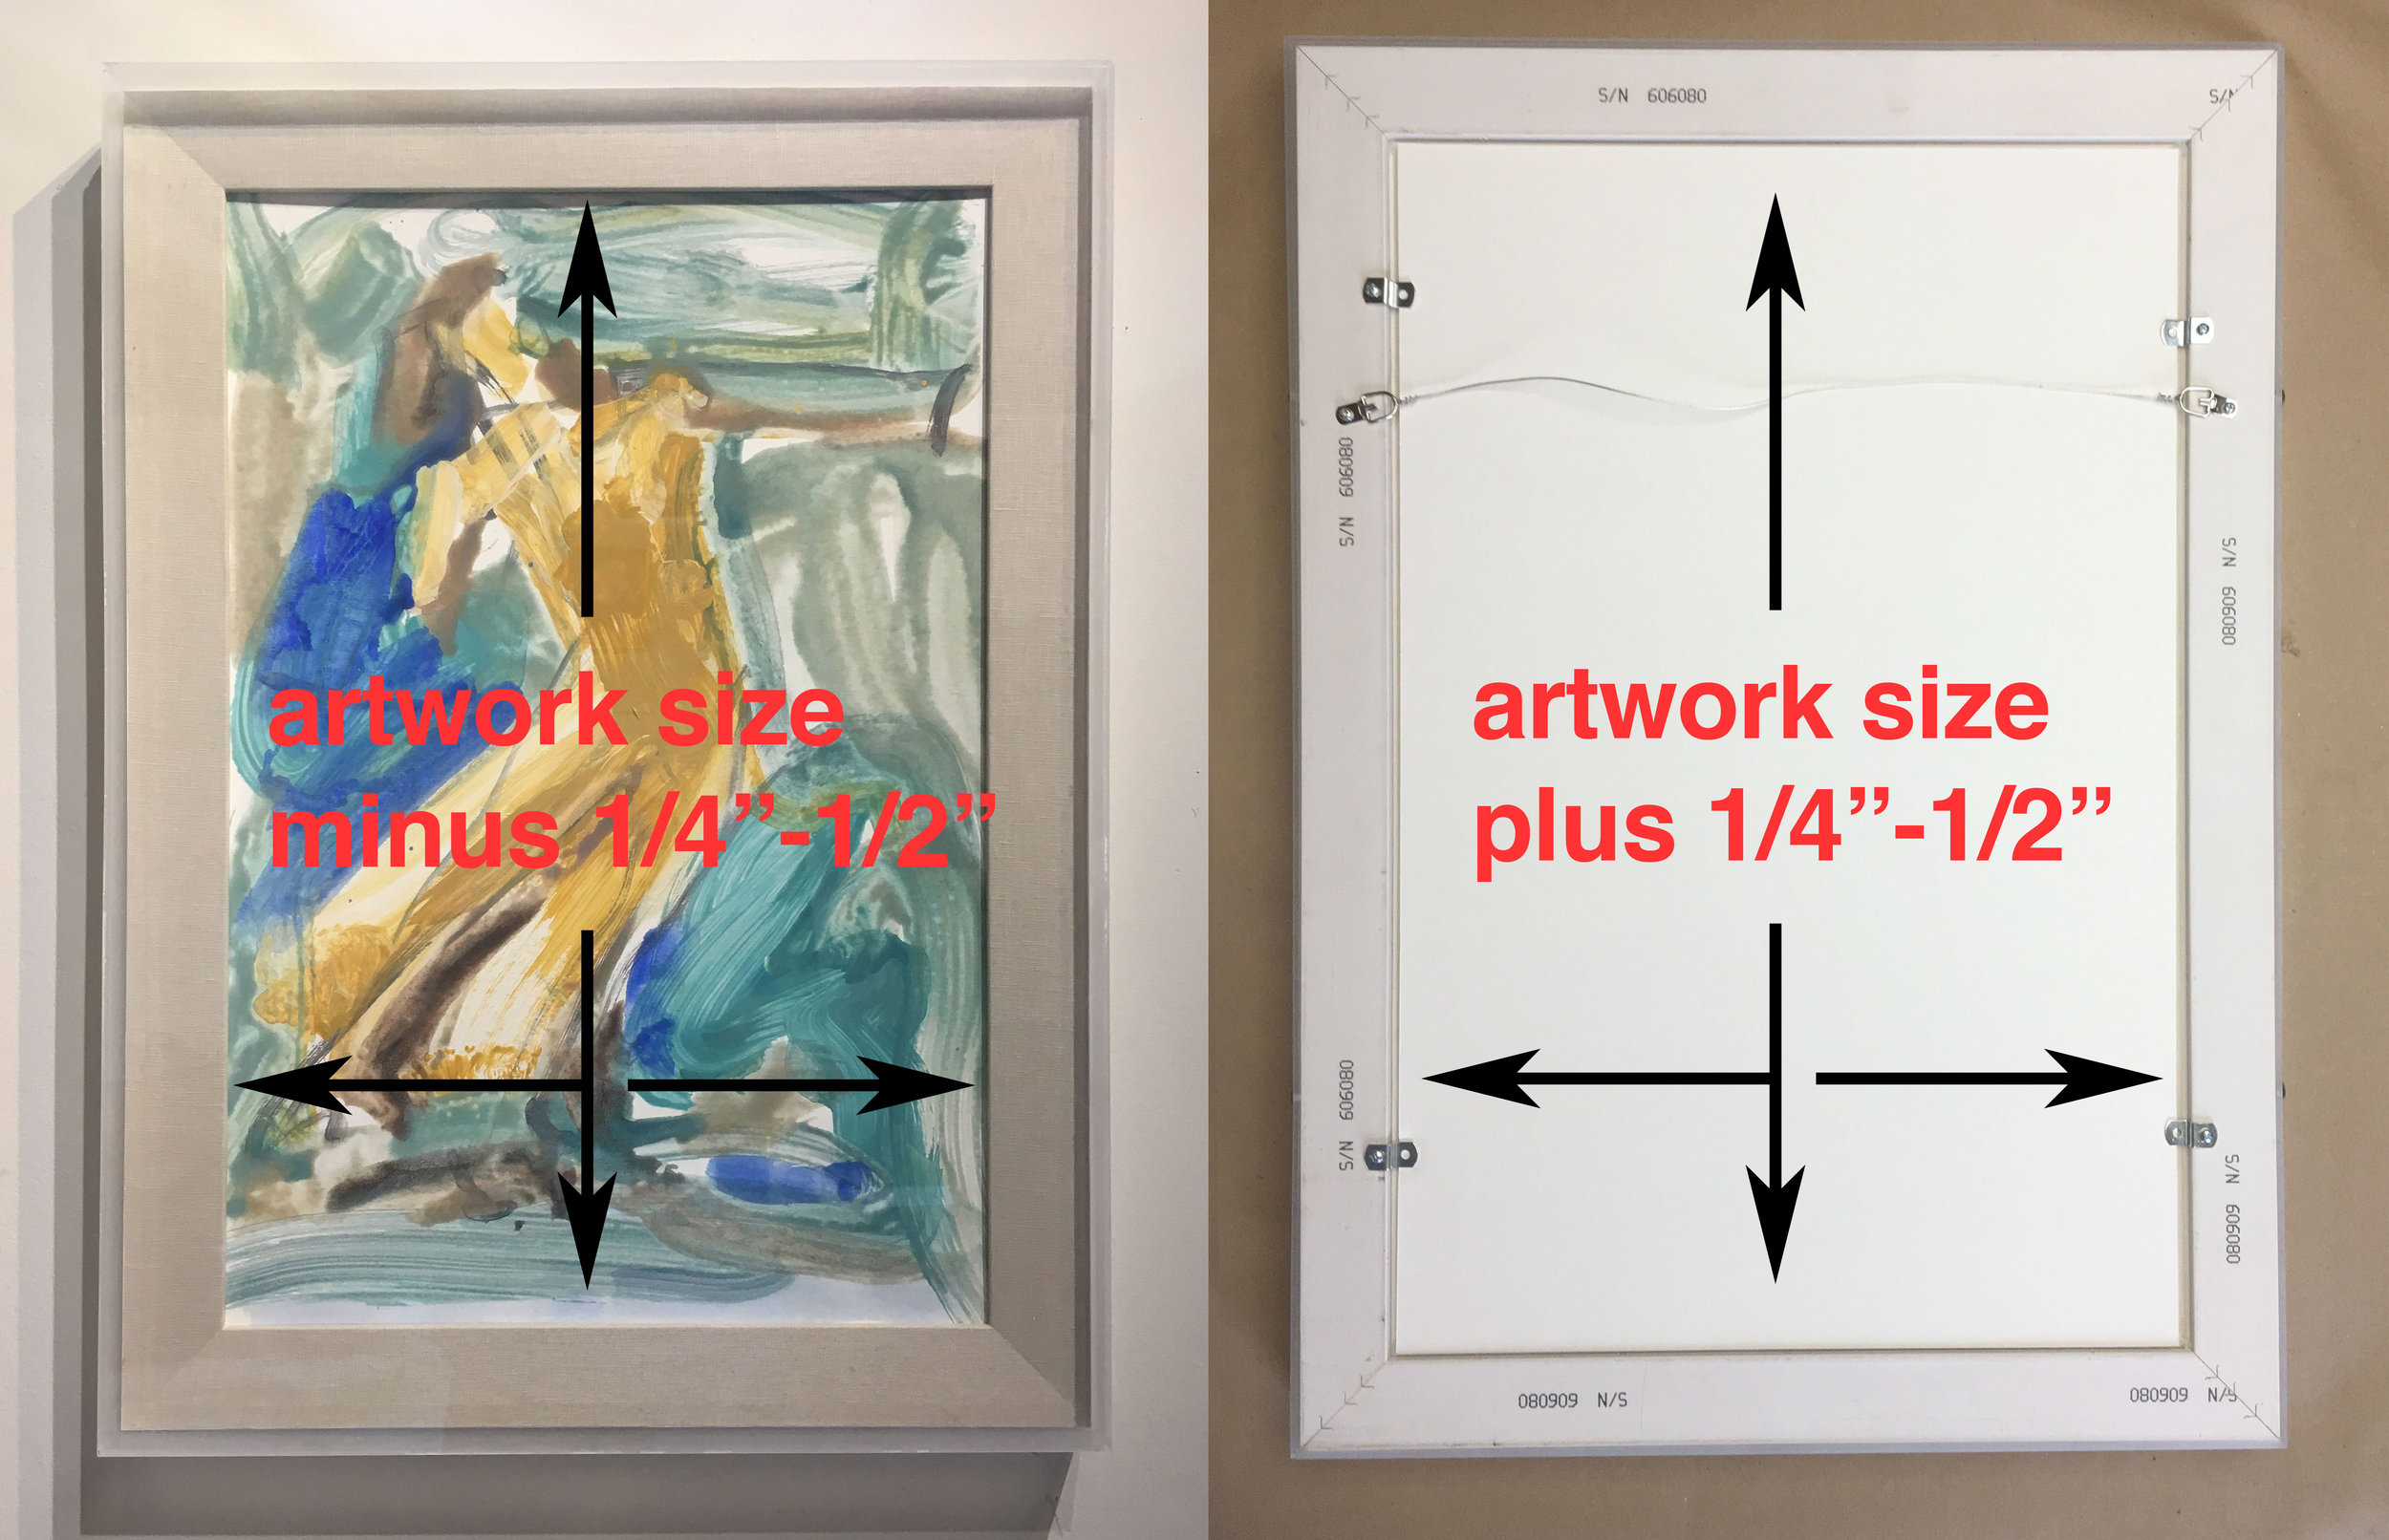 - The space for the artwork is 1/8